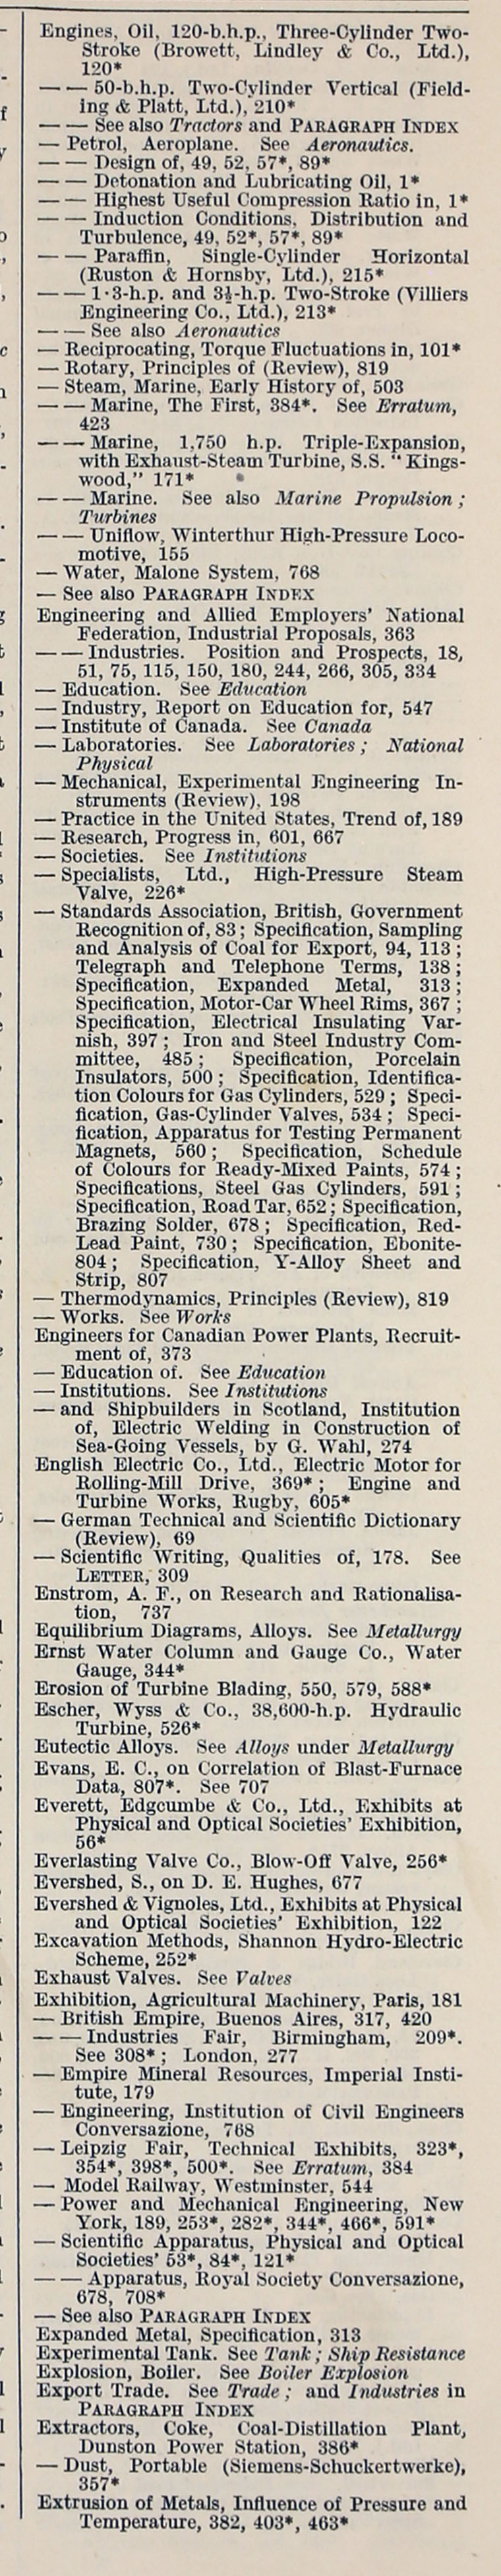 Engineering 1931 Jan Jun Index General Index # Muebles Nemesis Bahia Blanca